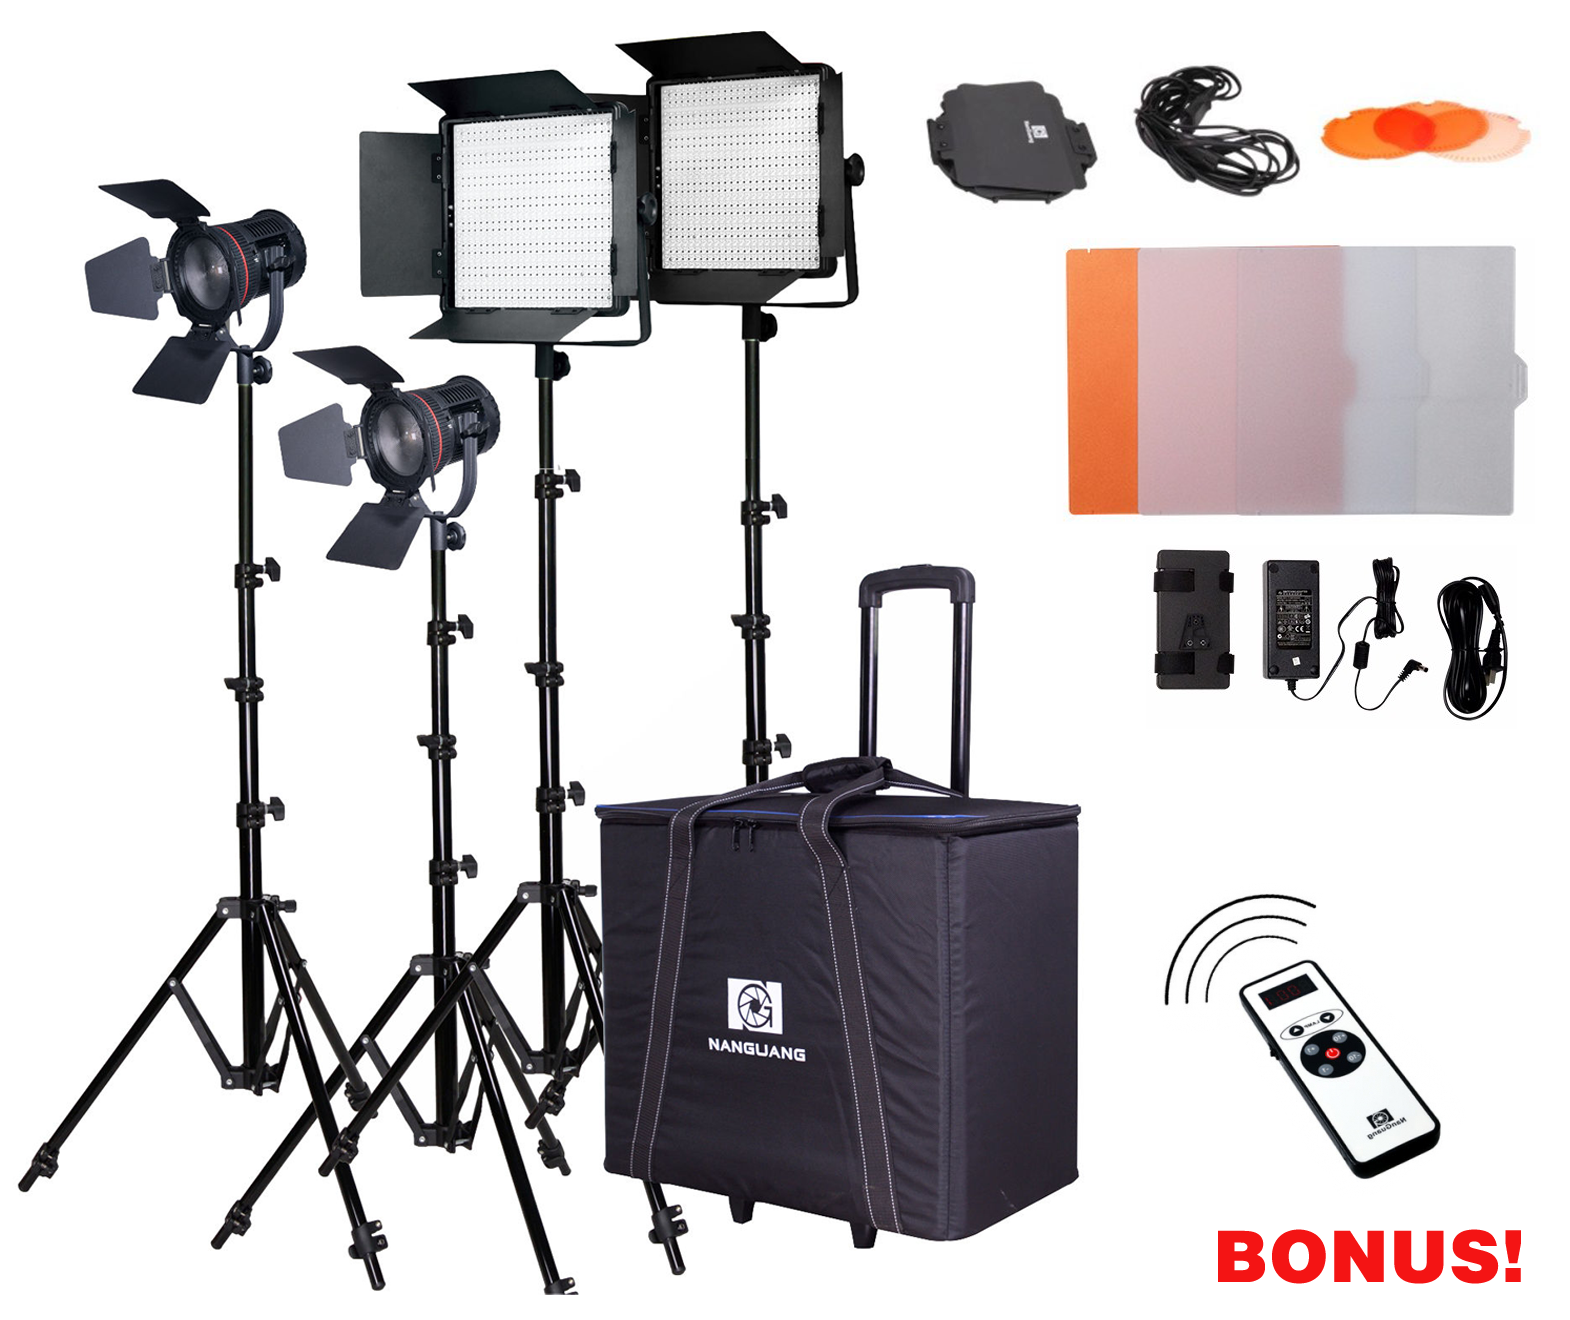 NANGUANG STUDIOSET INTERVIEW LIGHT 6000 (2 X CN-600SA + 2 X CN-30F)